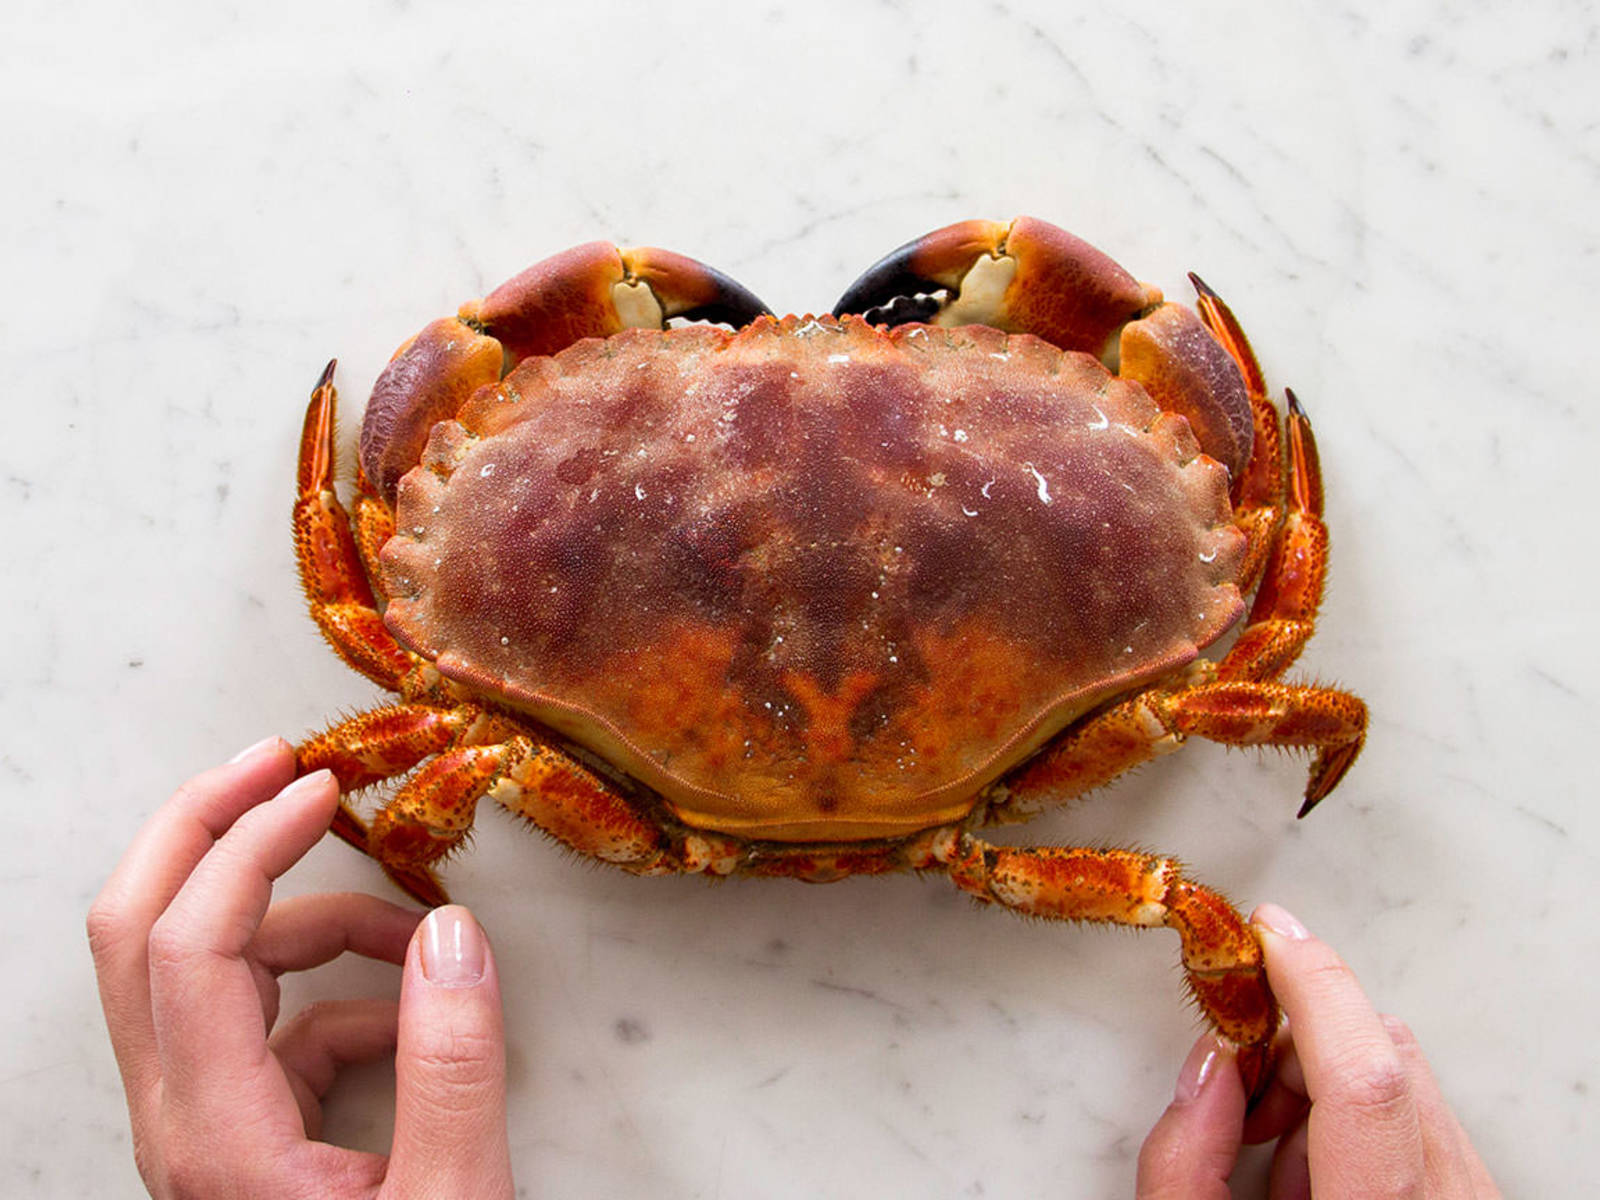 How to eat crab.